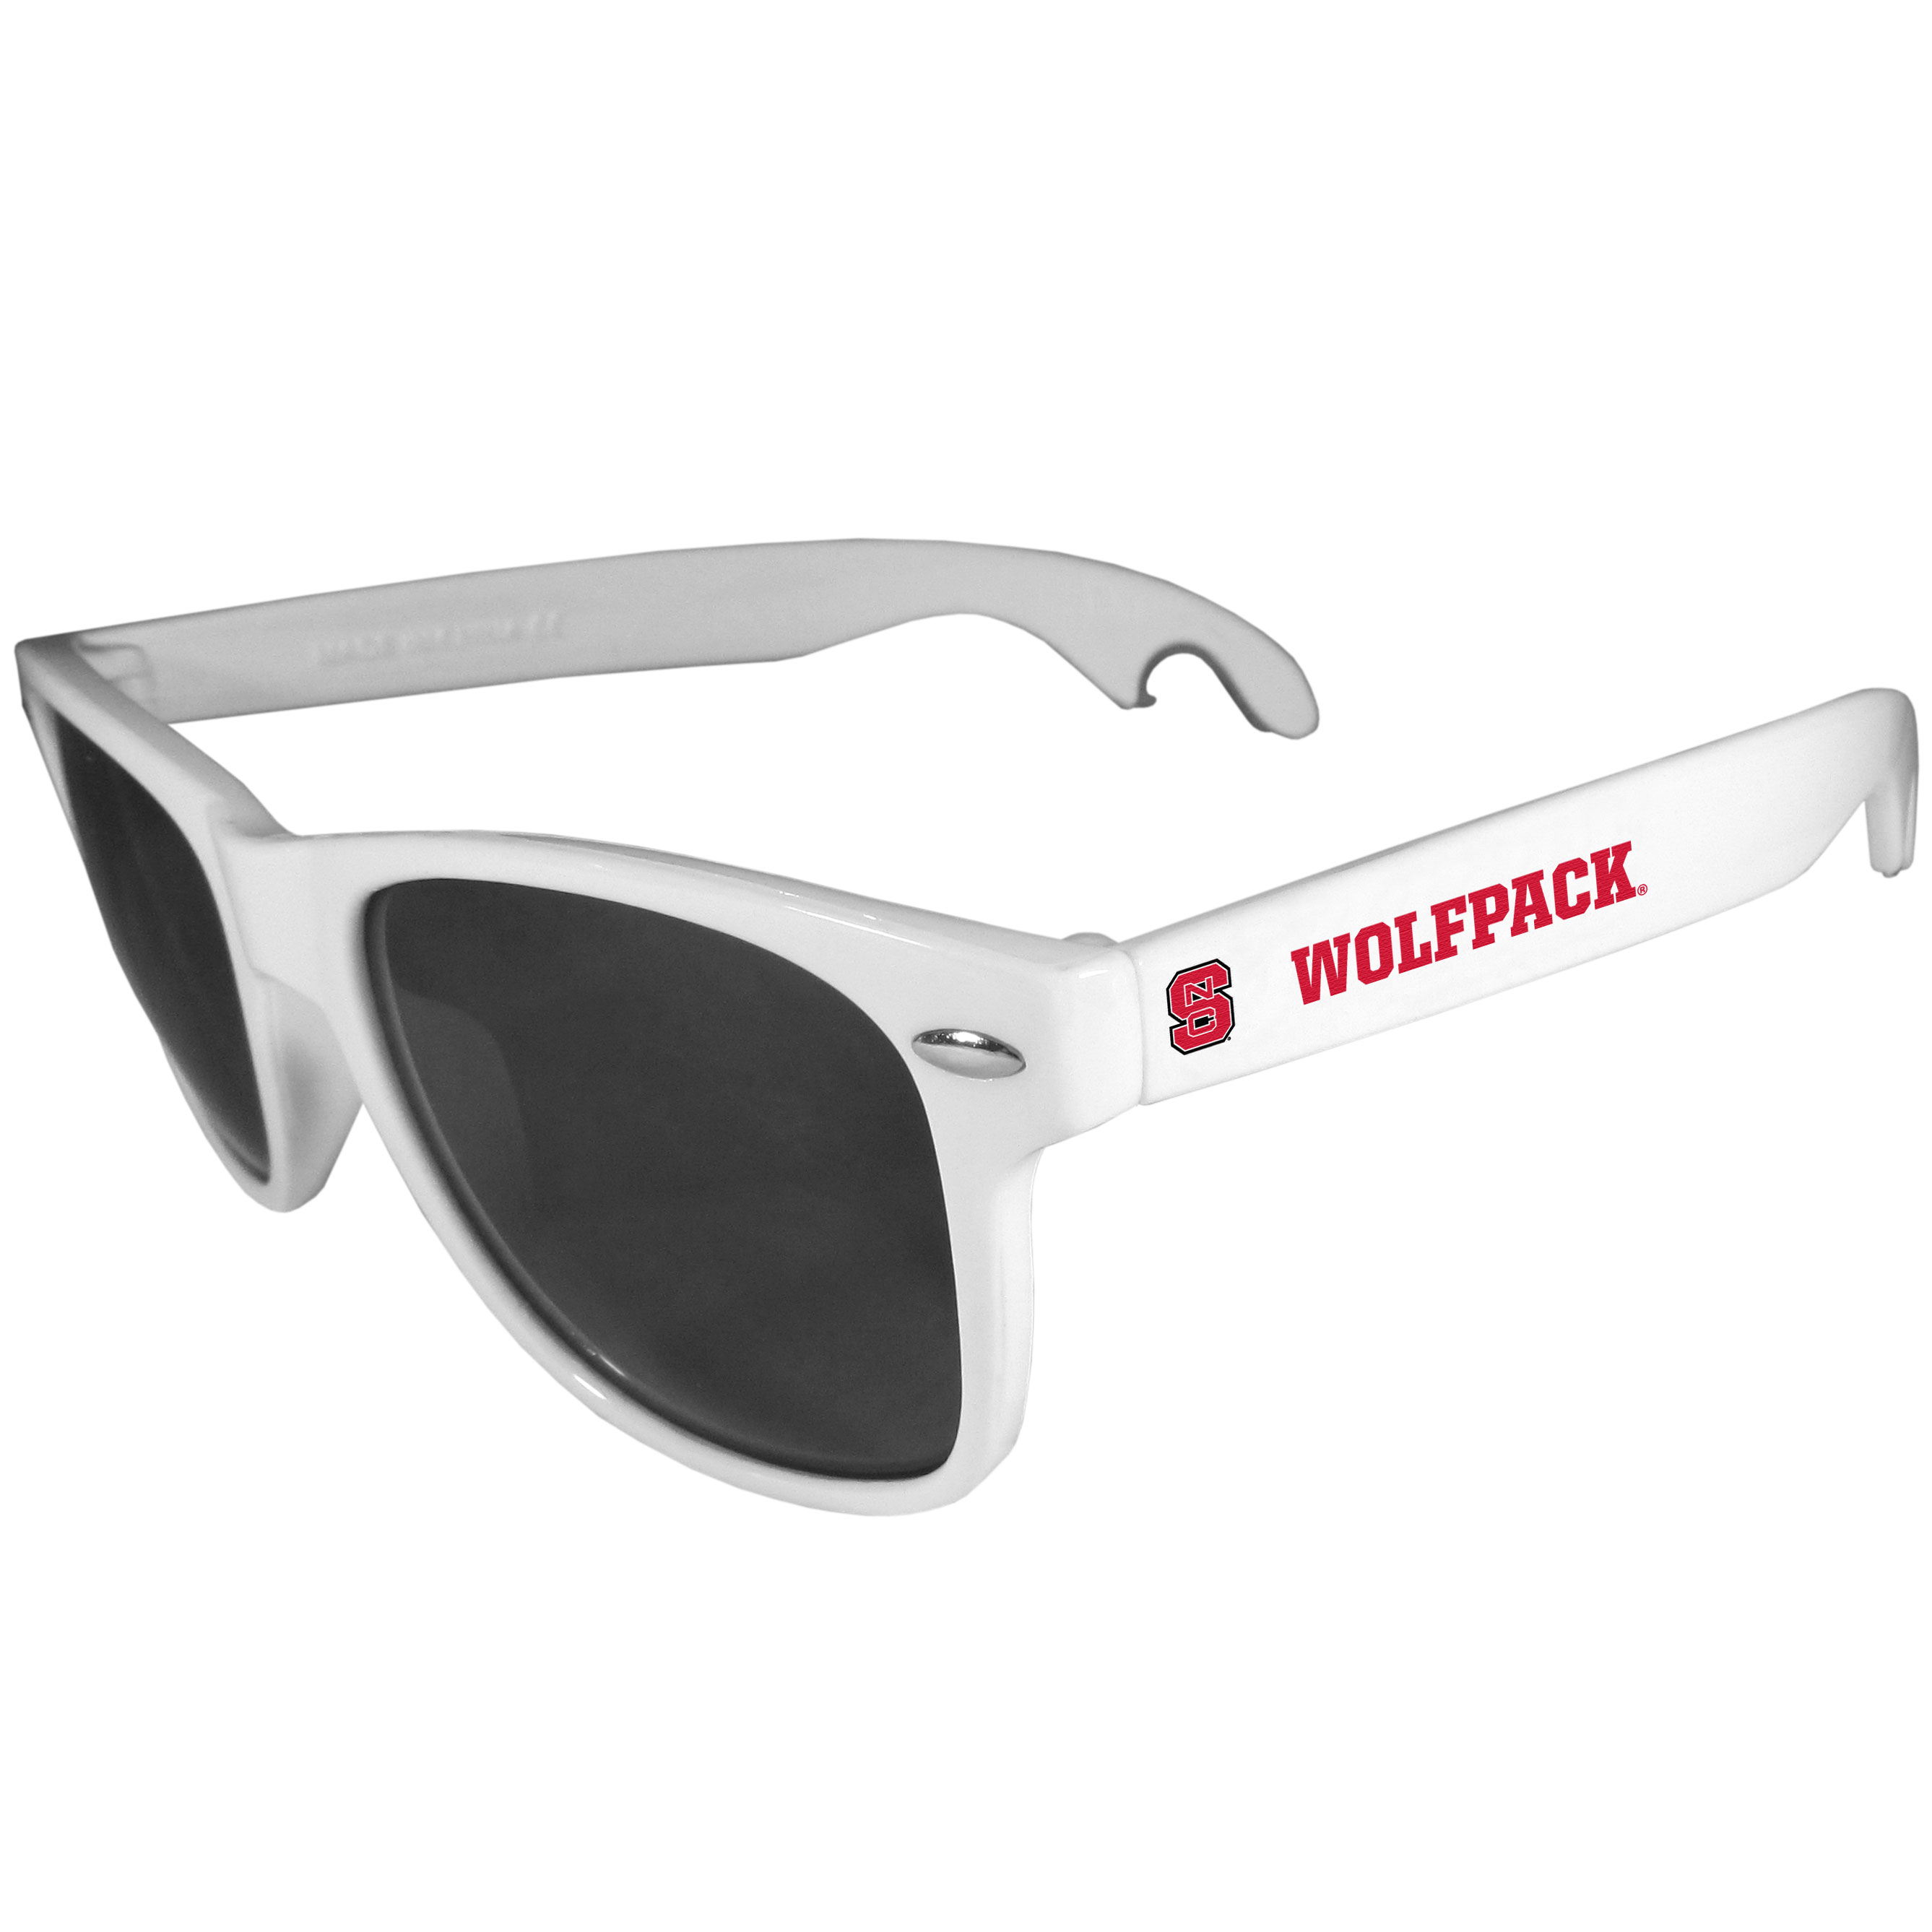 N. Carolina St. Wolfpack Beachfarer Bottle Opener Sunglasses, White - Seriously, these sunglasses open bottles! Keep the party going with these amazing N. Carolina St. Wolfpack bottle opener sunglasses. The stylish retro frames feature team designs on the arms and functional bottle openers on the end of the arms. Whether you are at the beach or having a backyard BBQ on game day, these shades will keep your eyes protected with 100% UVA/UVB protection and keep you hydrated with the handy bottle opener arms.